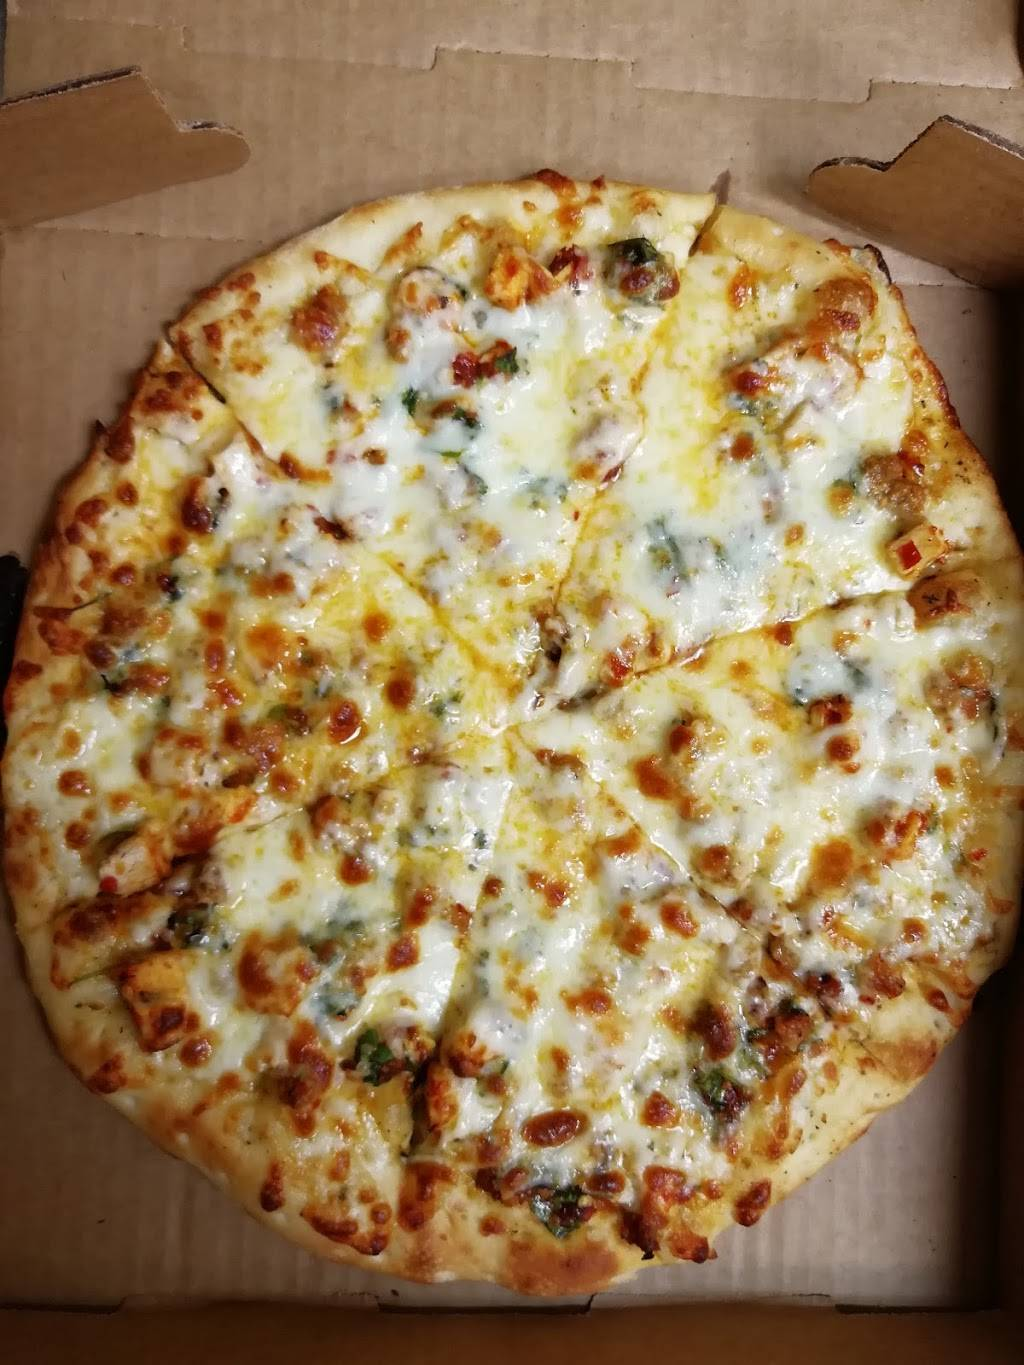 Upper Crust Pizzeria & Deli | meal delivery | 8835 Centre Park Dr #103, Columbia, MD 21045, USA | 4107409009 OR +1 410-740-9009